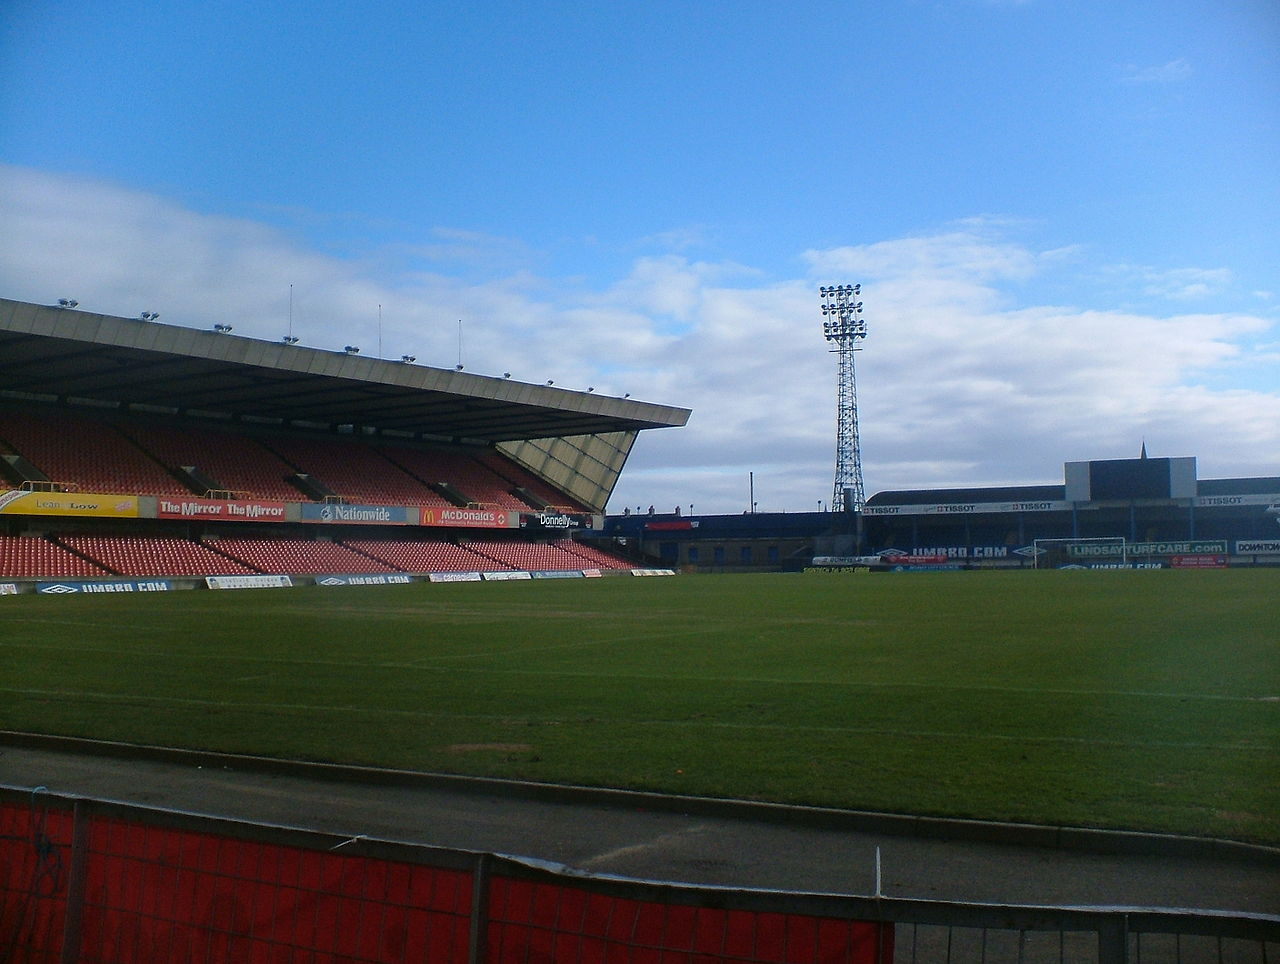 Windsor Park football stadium a Belfast in Irlanda - Regno Unito